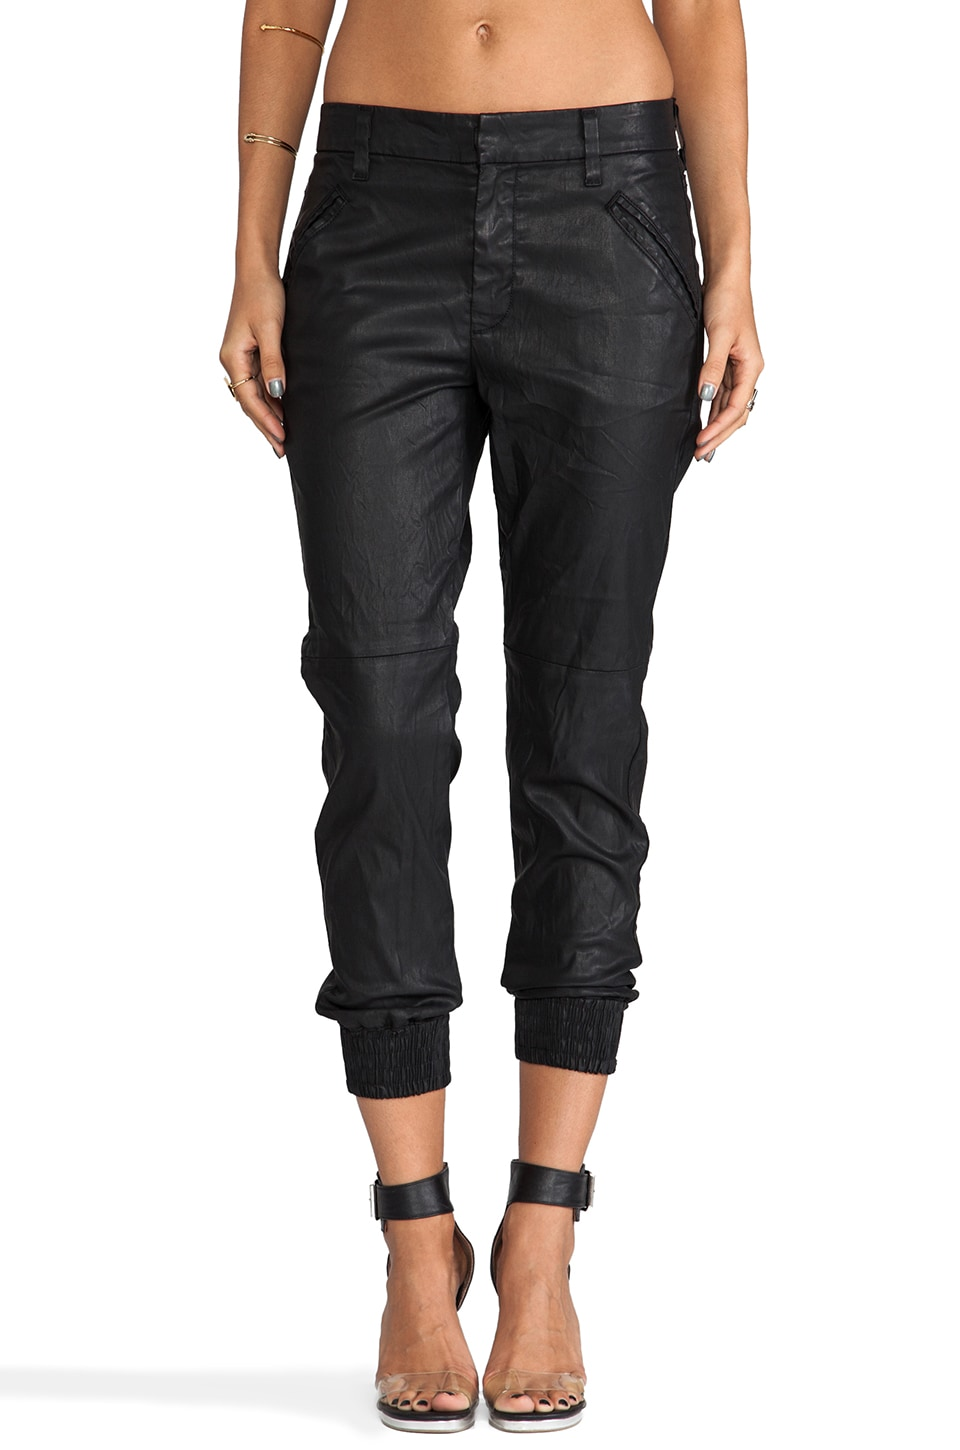 7 For All Mankind Sportif Chino in Black Coated Twill